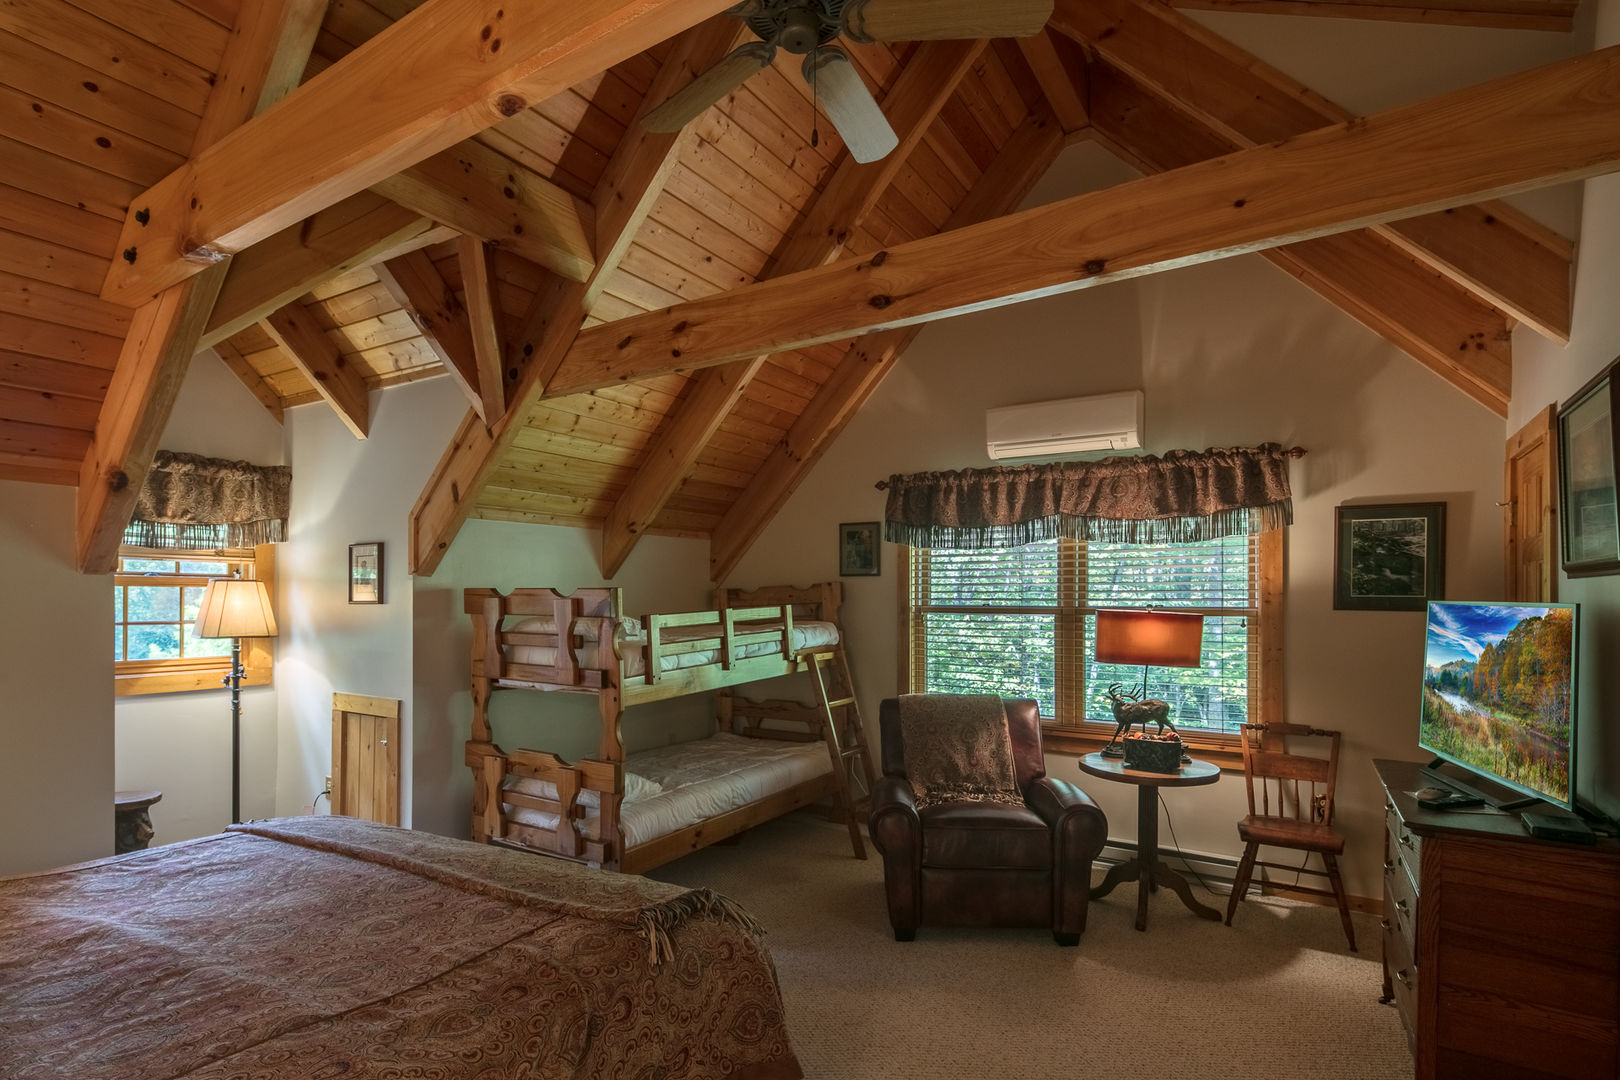 This large bedroom is perfect for a family with young children or a group of teens.